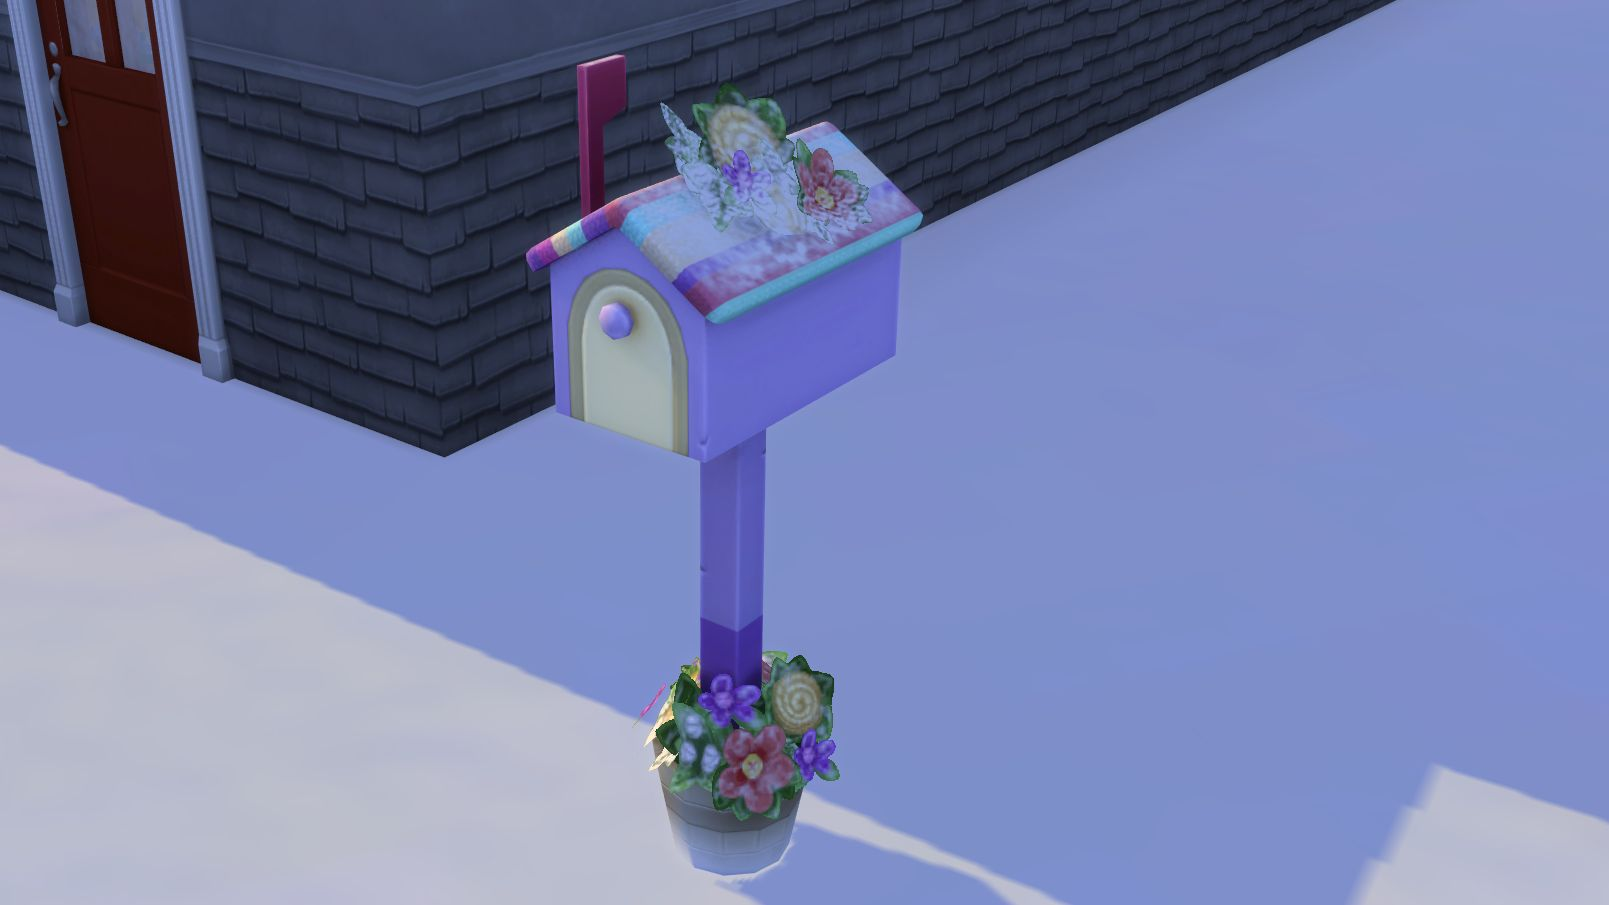 A knitted mail box cover from The Sims 4 Nifty Knitting. It is purple, with a knitted striped roof in pink, purple, turquoise and yellow, and has fake flowers made from yarn also. No real person would have this outside their home. Also, it has been dusted with fresh snow.